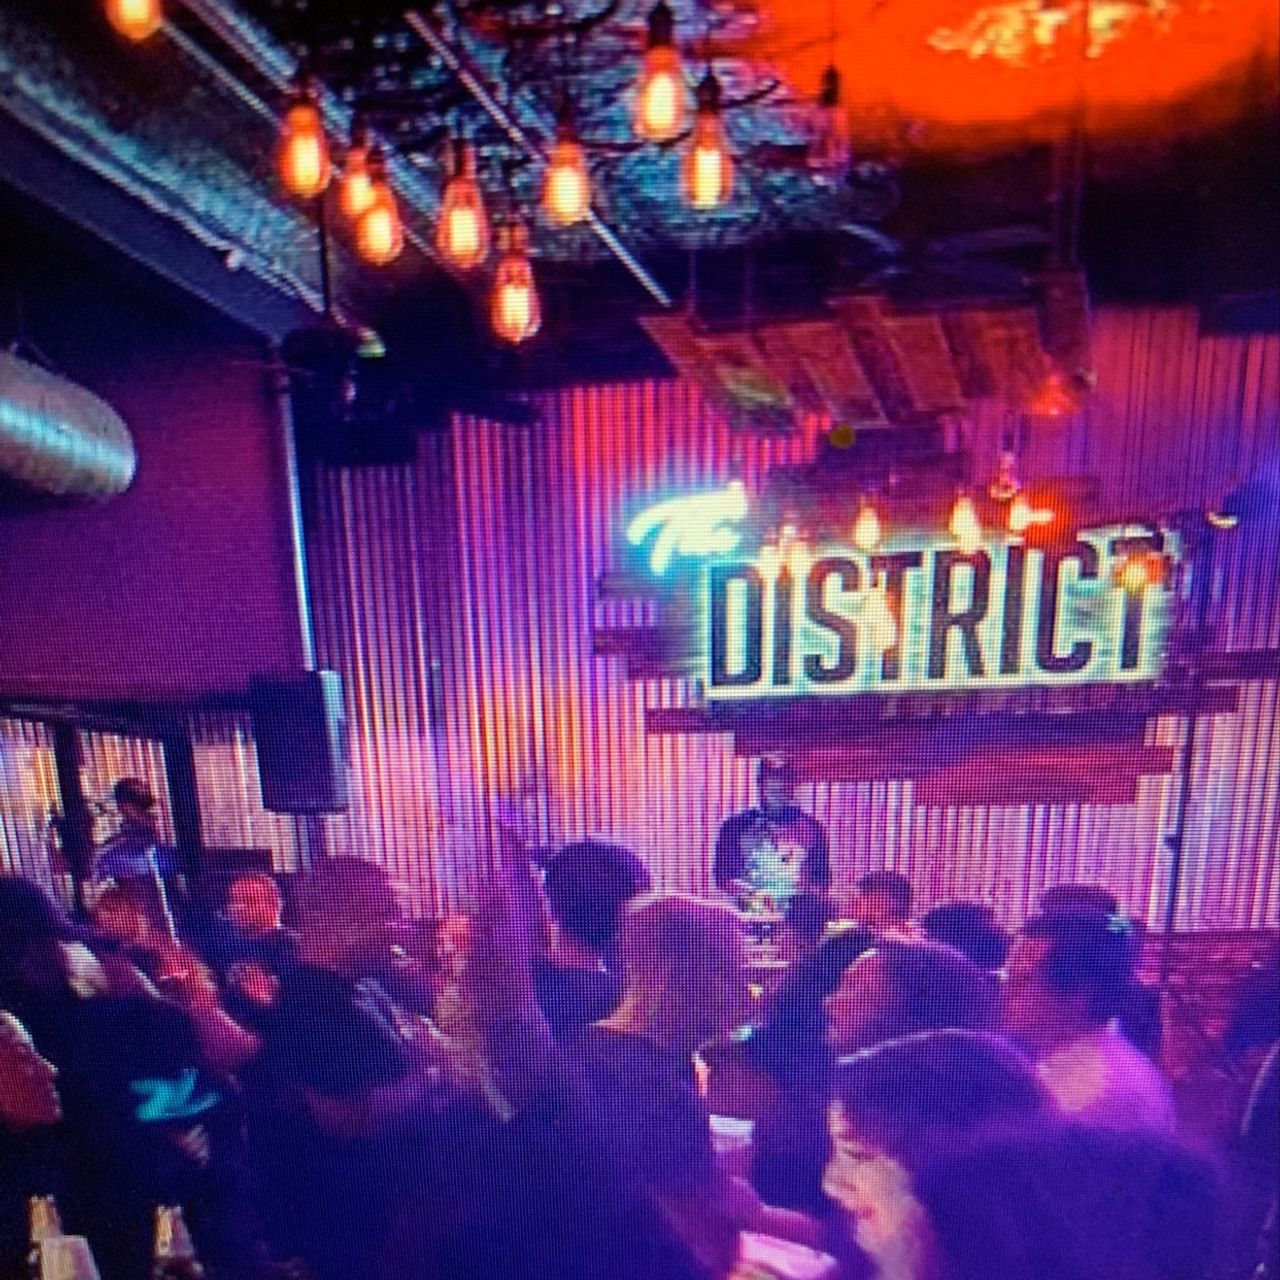 The District -